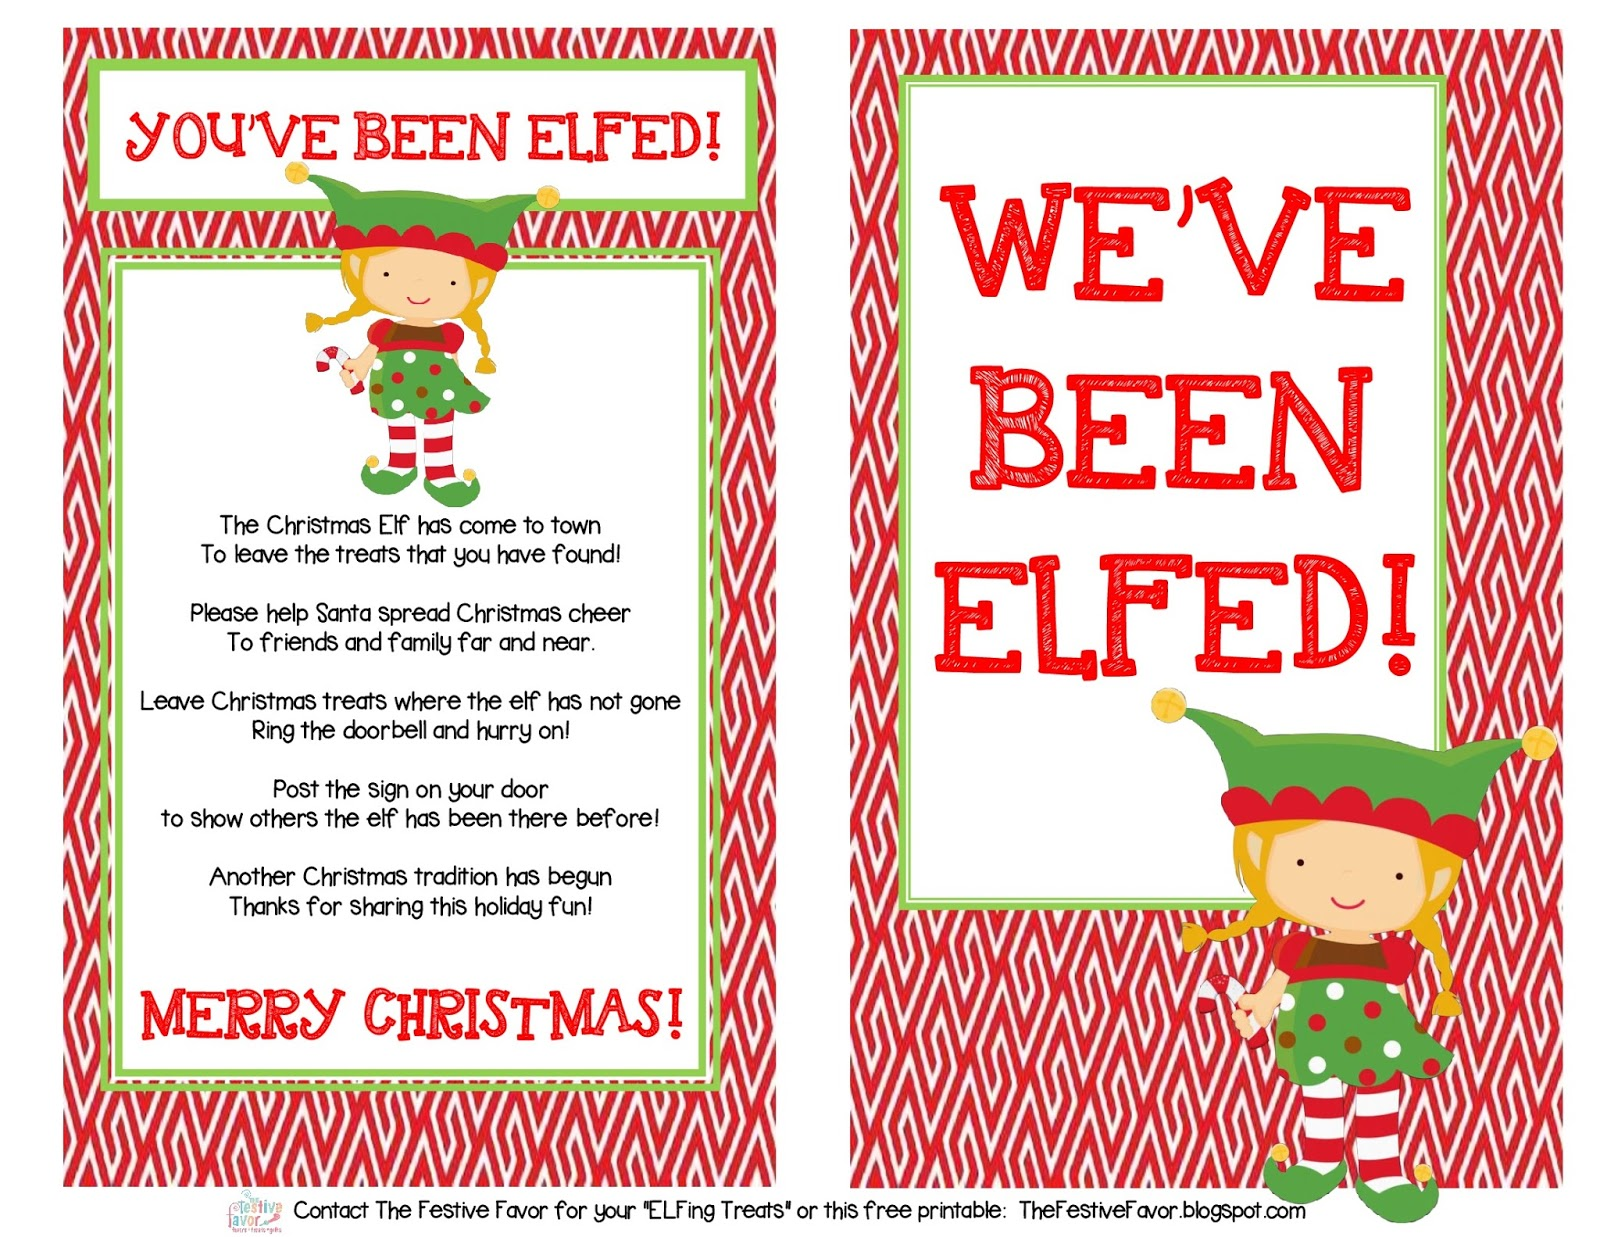 image about You Ve Been Elfed Printable identified as The Festive Want: Youve Been Elfed! Free of charge Printable